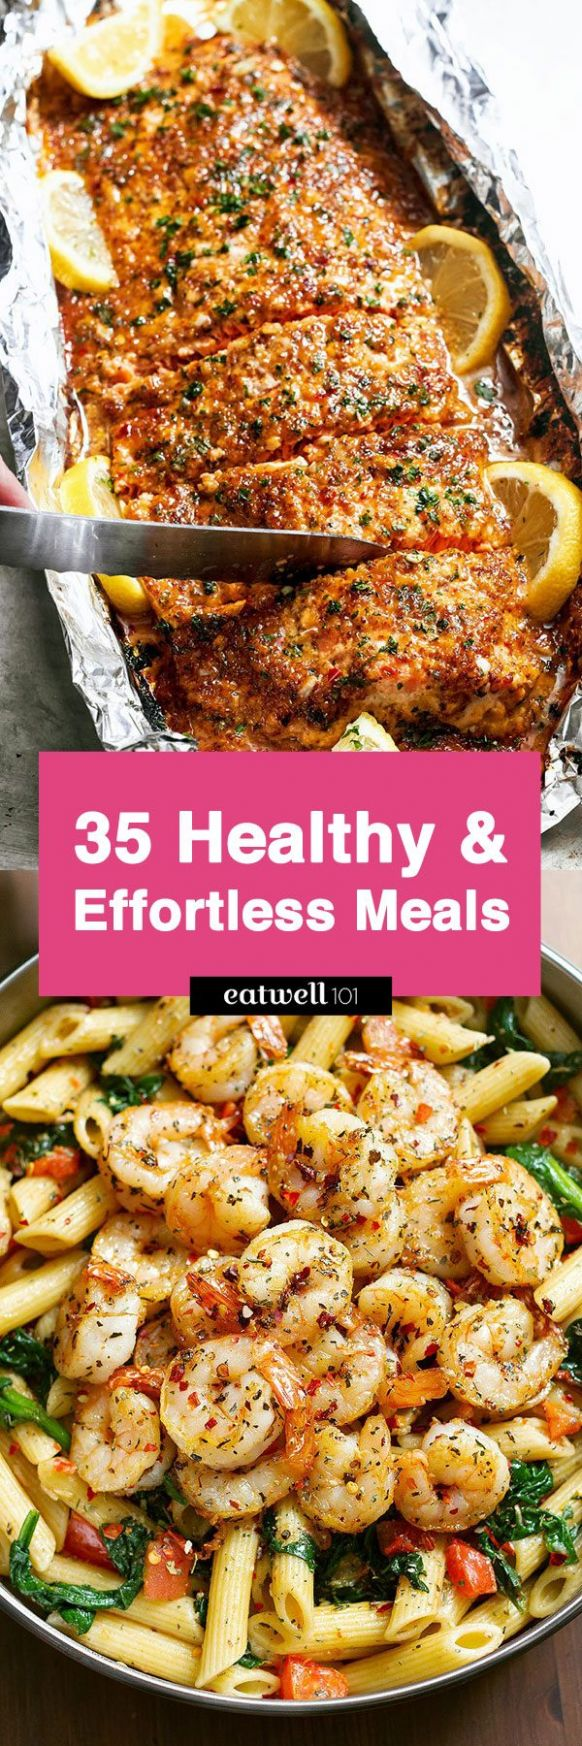 Easy Healthy Dinner Ideas: 10 Low Effort and Healthy Dinner ...